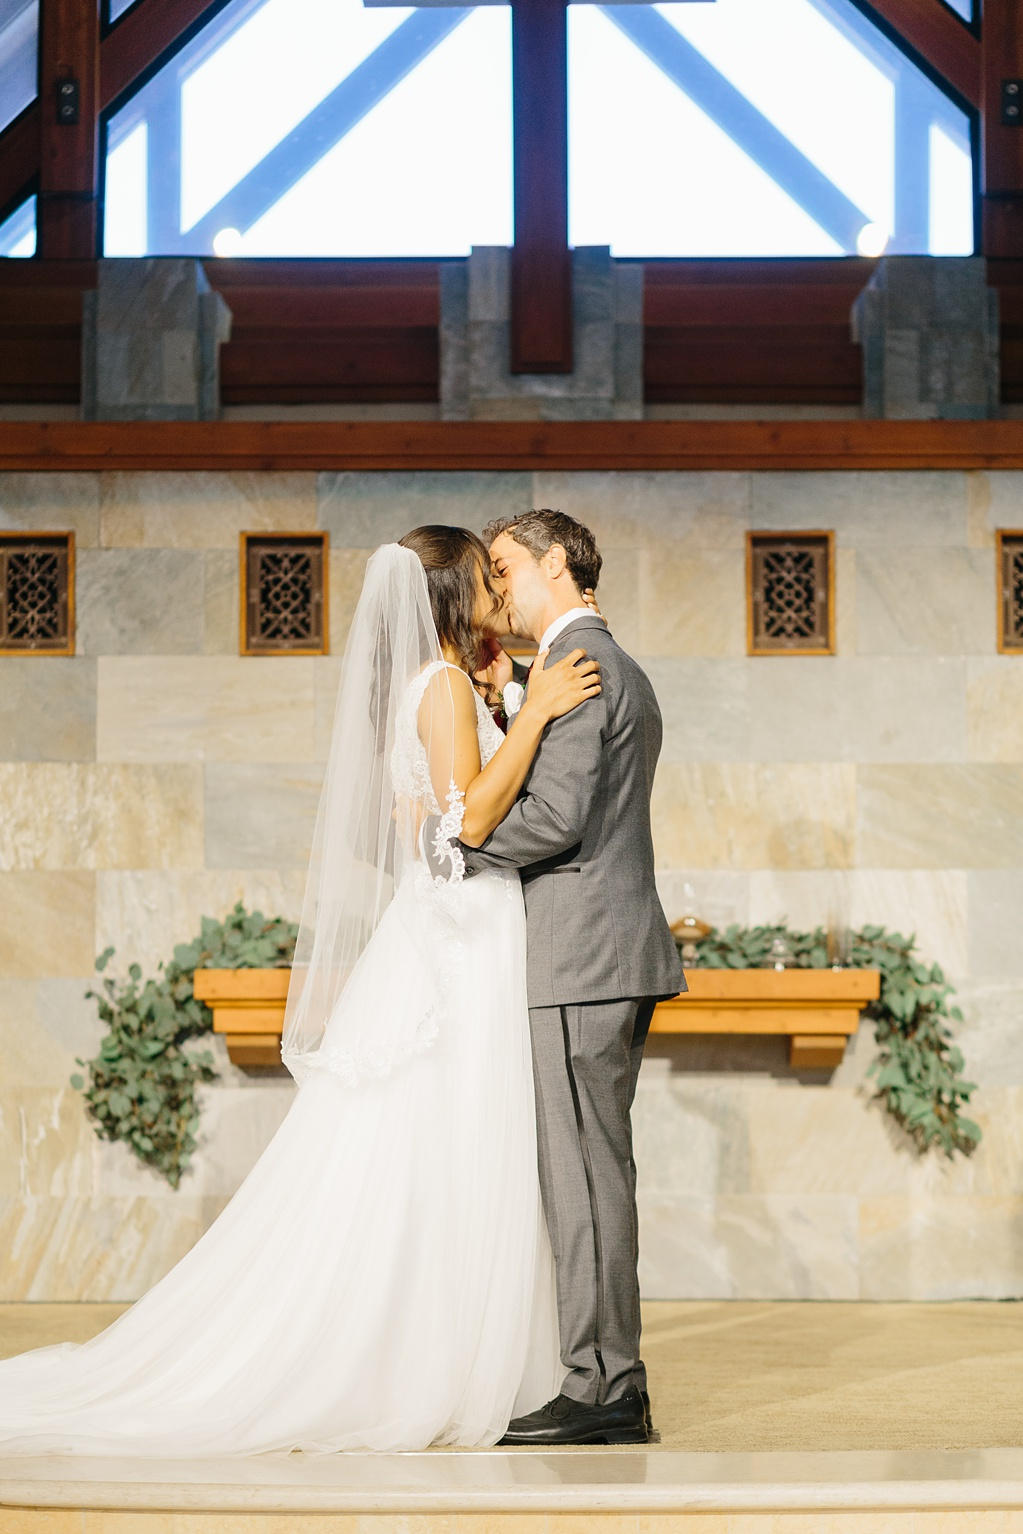 Natural Light Church Wedding In Irvine California By Madison Ellis Photography (18)